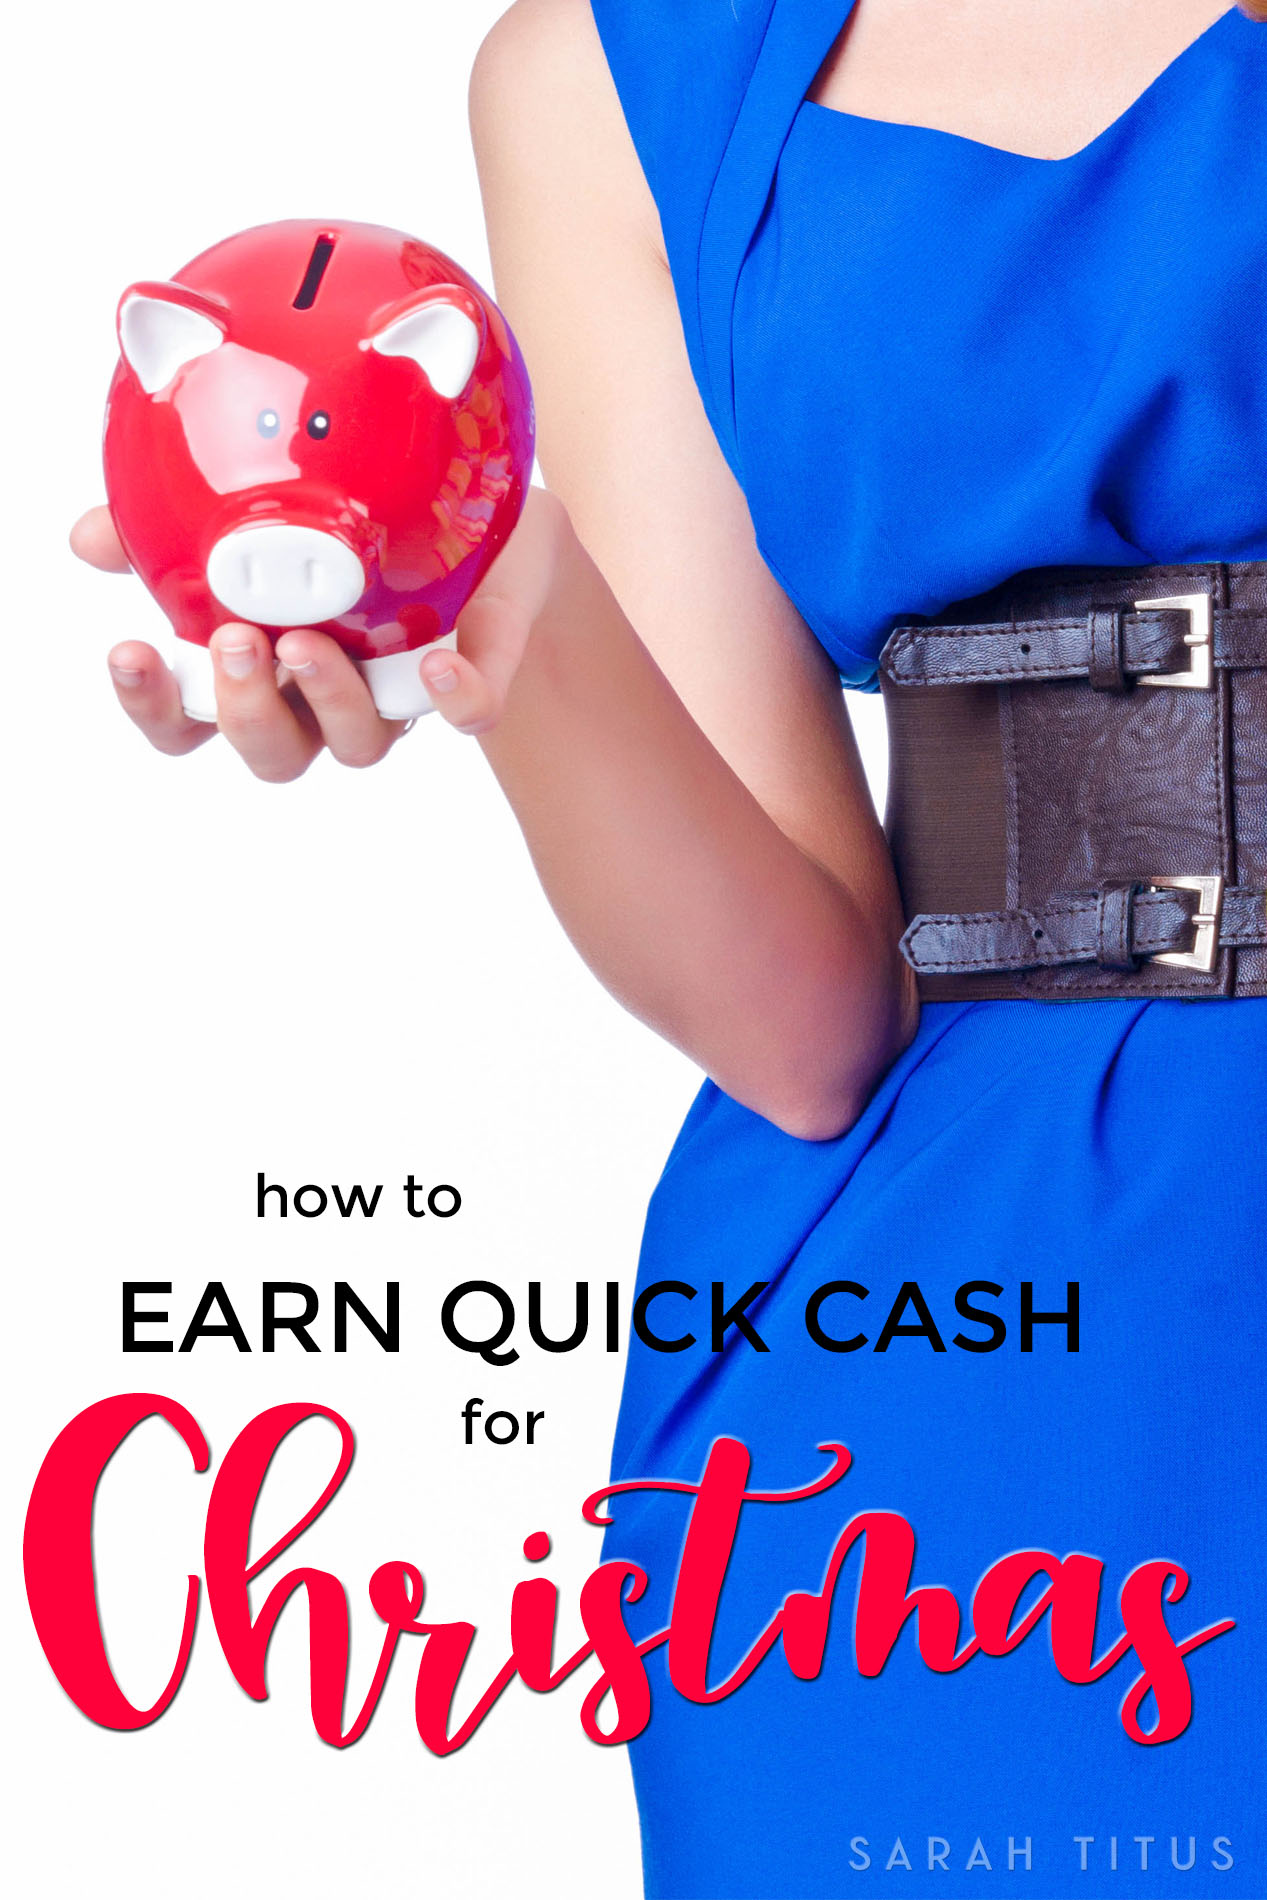 How to Earn Quick Cash for Christmas